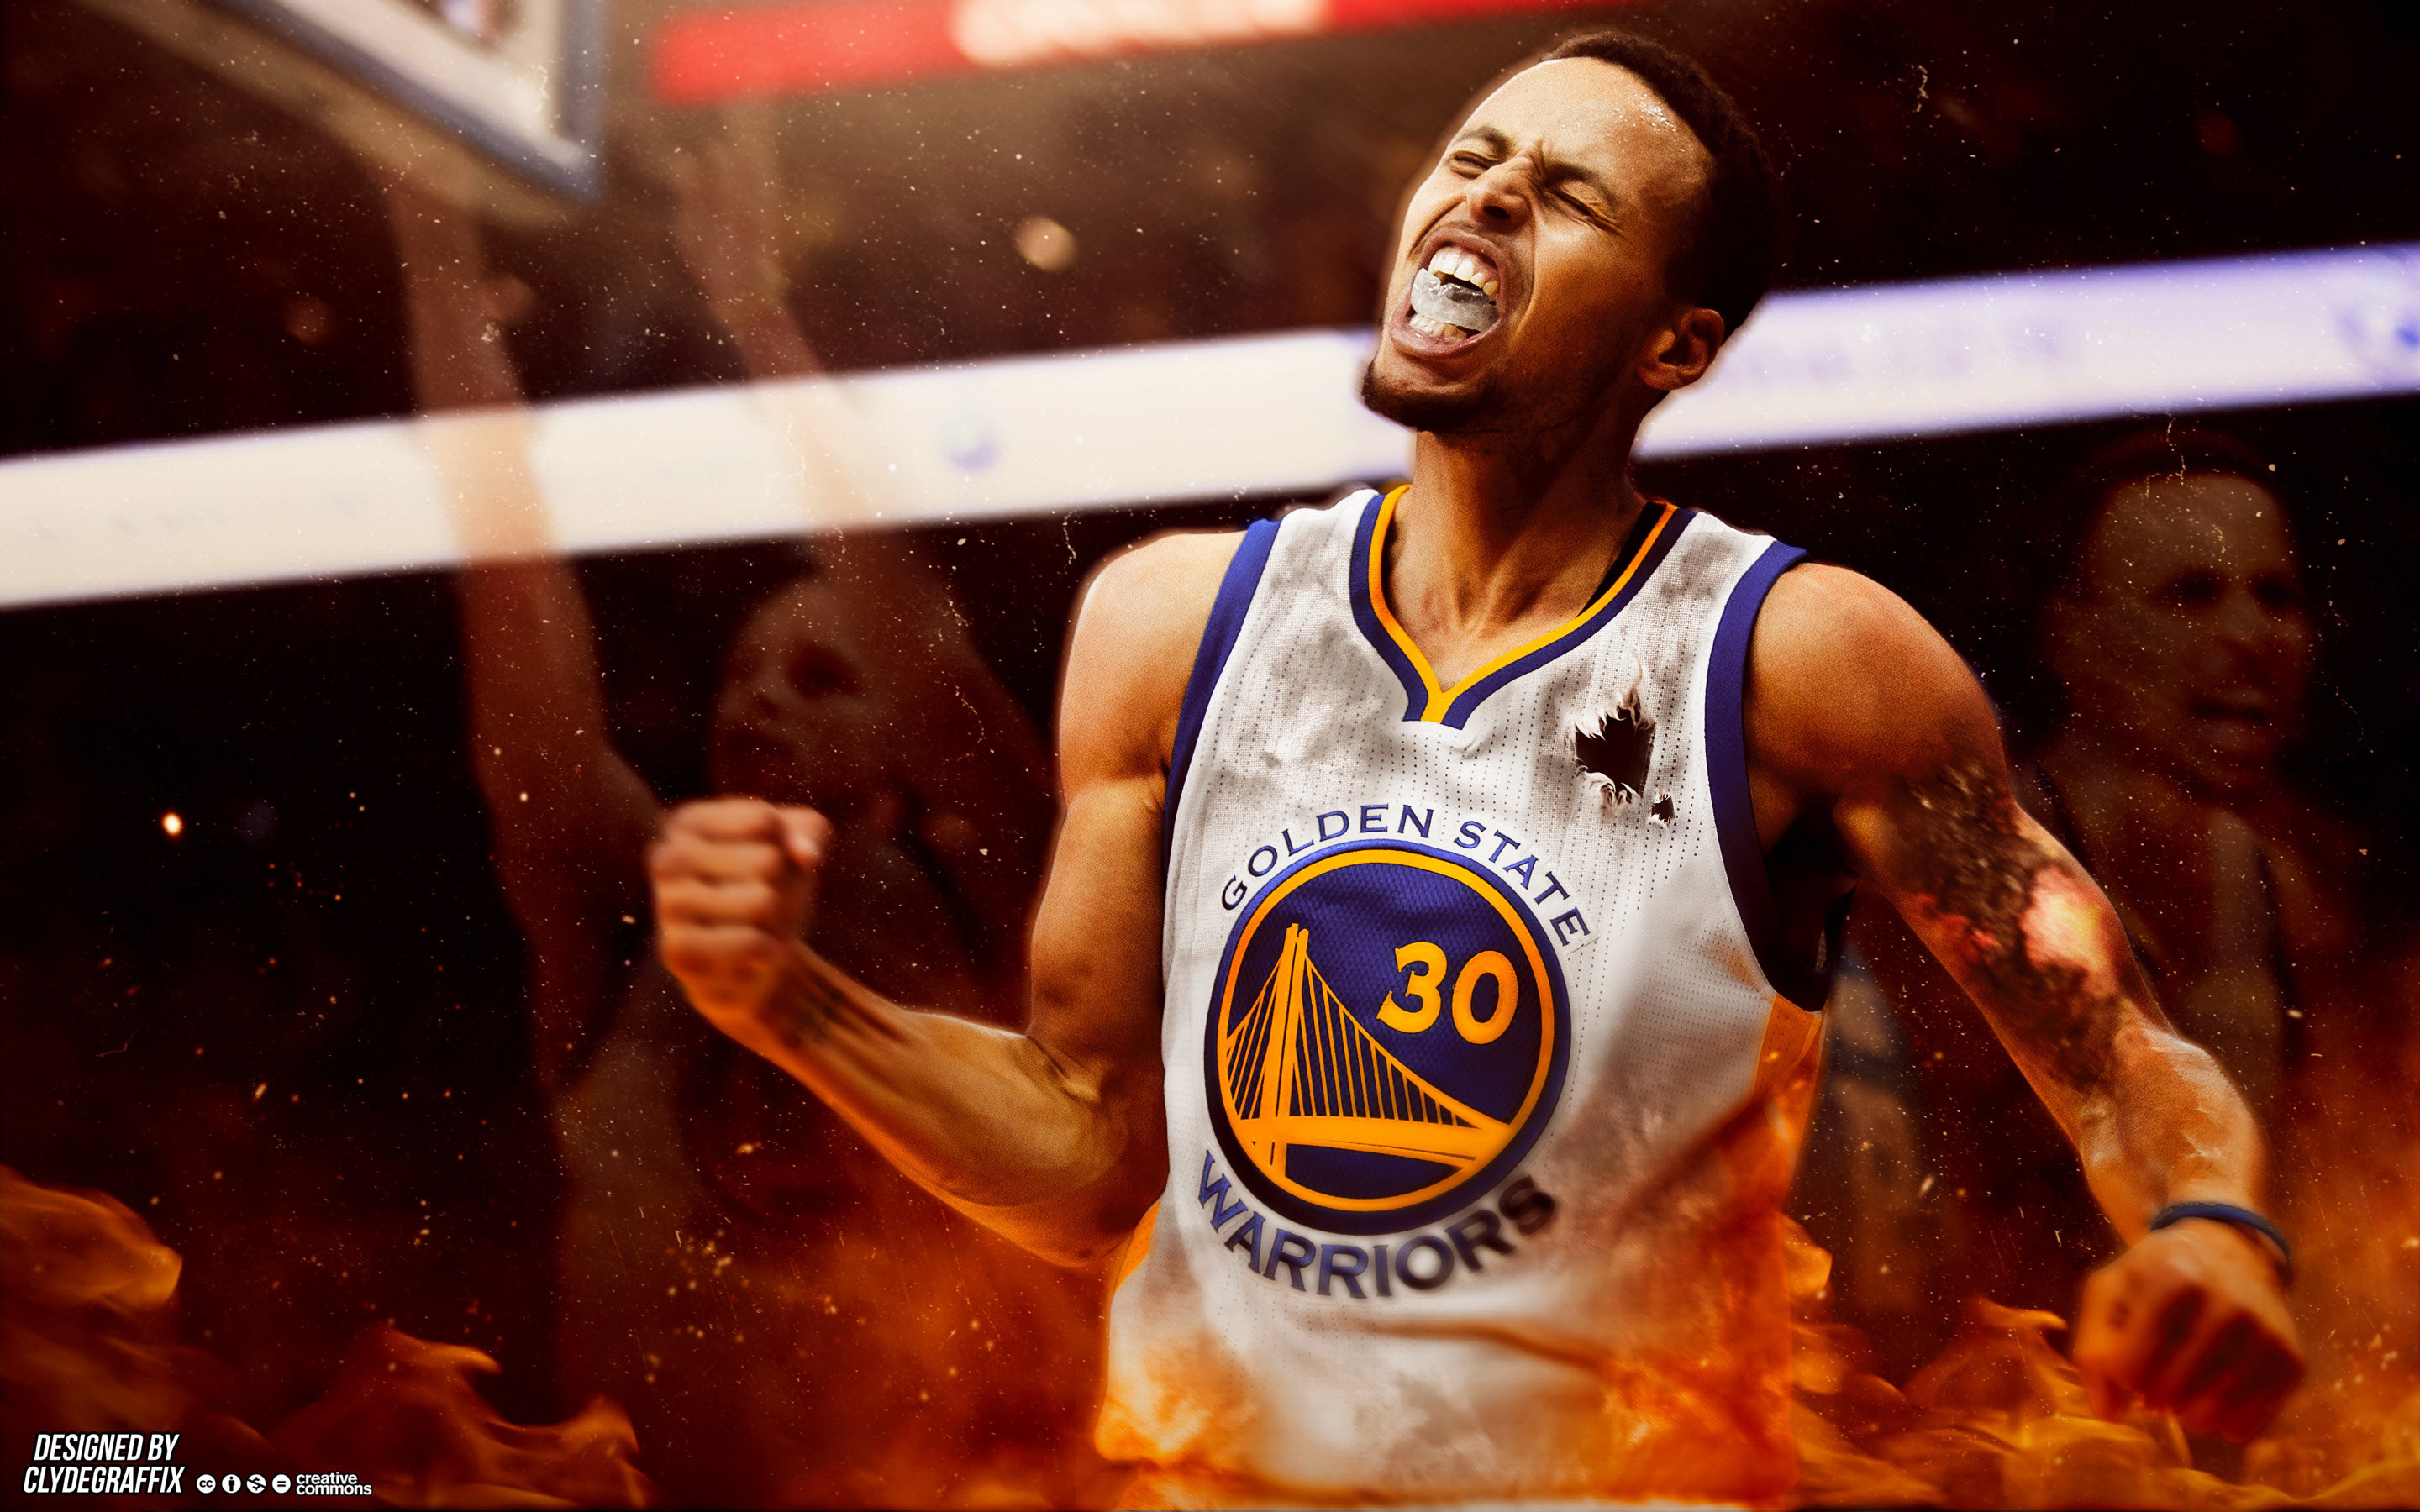 Stephen Curry Wallpaper Hd 2017 82 Images